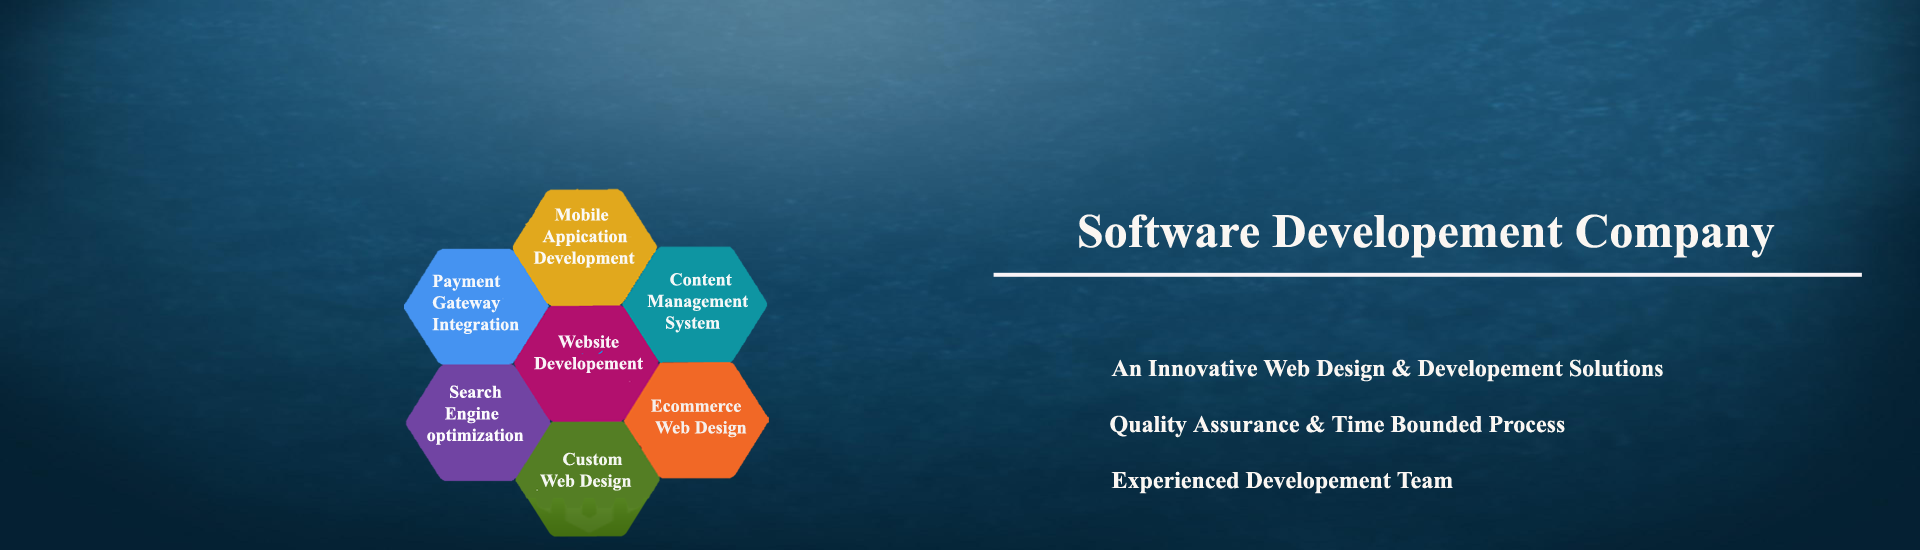 Software Company In Rajasthan Software Company In India